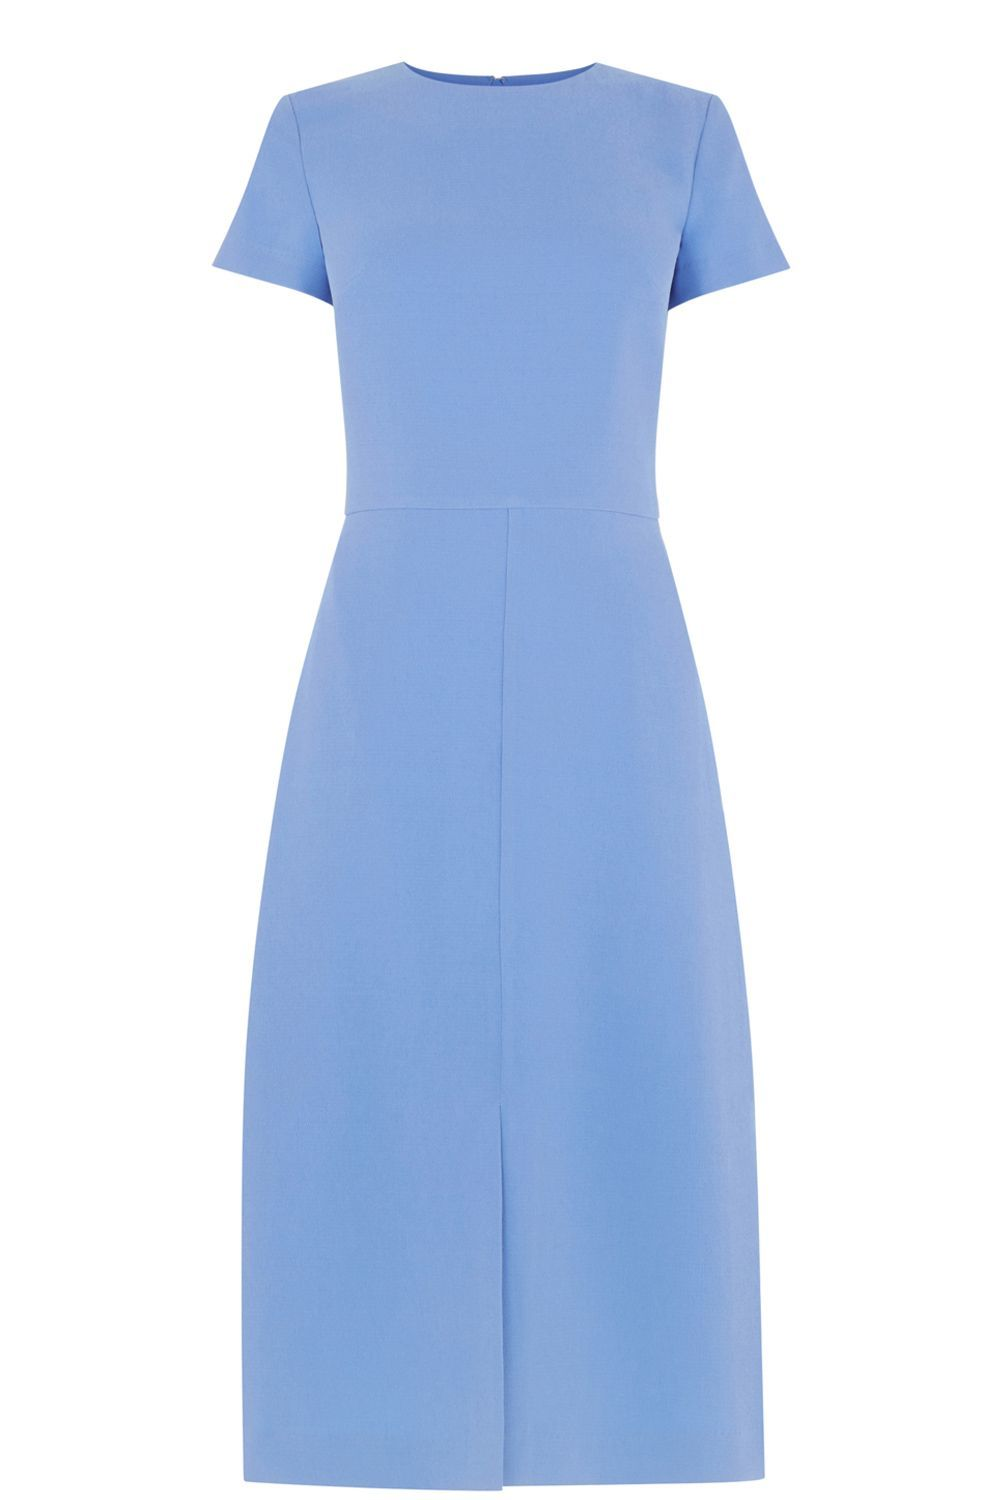 Split Front Midi Dress, Blue - style: shift; length: below the knee; fit: tailored/fitted; pattern: plain; predominant colour: pale blue; occasions: evening; fibres: polyester/polyamide - 100%; neckline: crew; sleeve length: short sleeve; sleeve style: standard; texture group: crepes; pattern type: fabric; season: s/s 2016; wardrobe: event